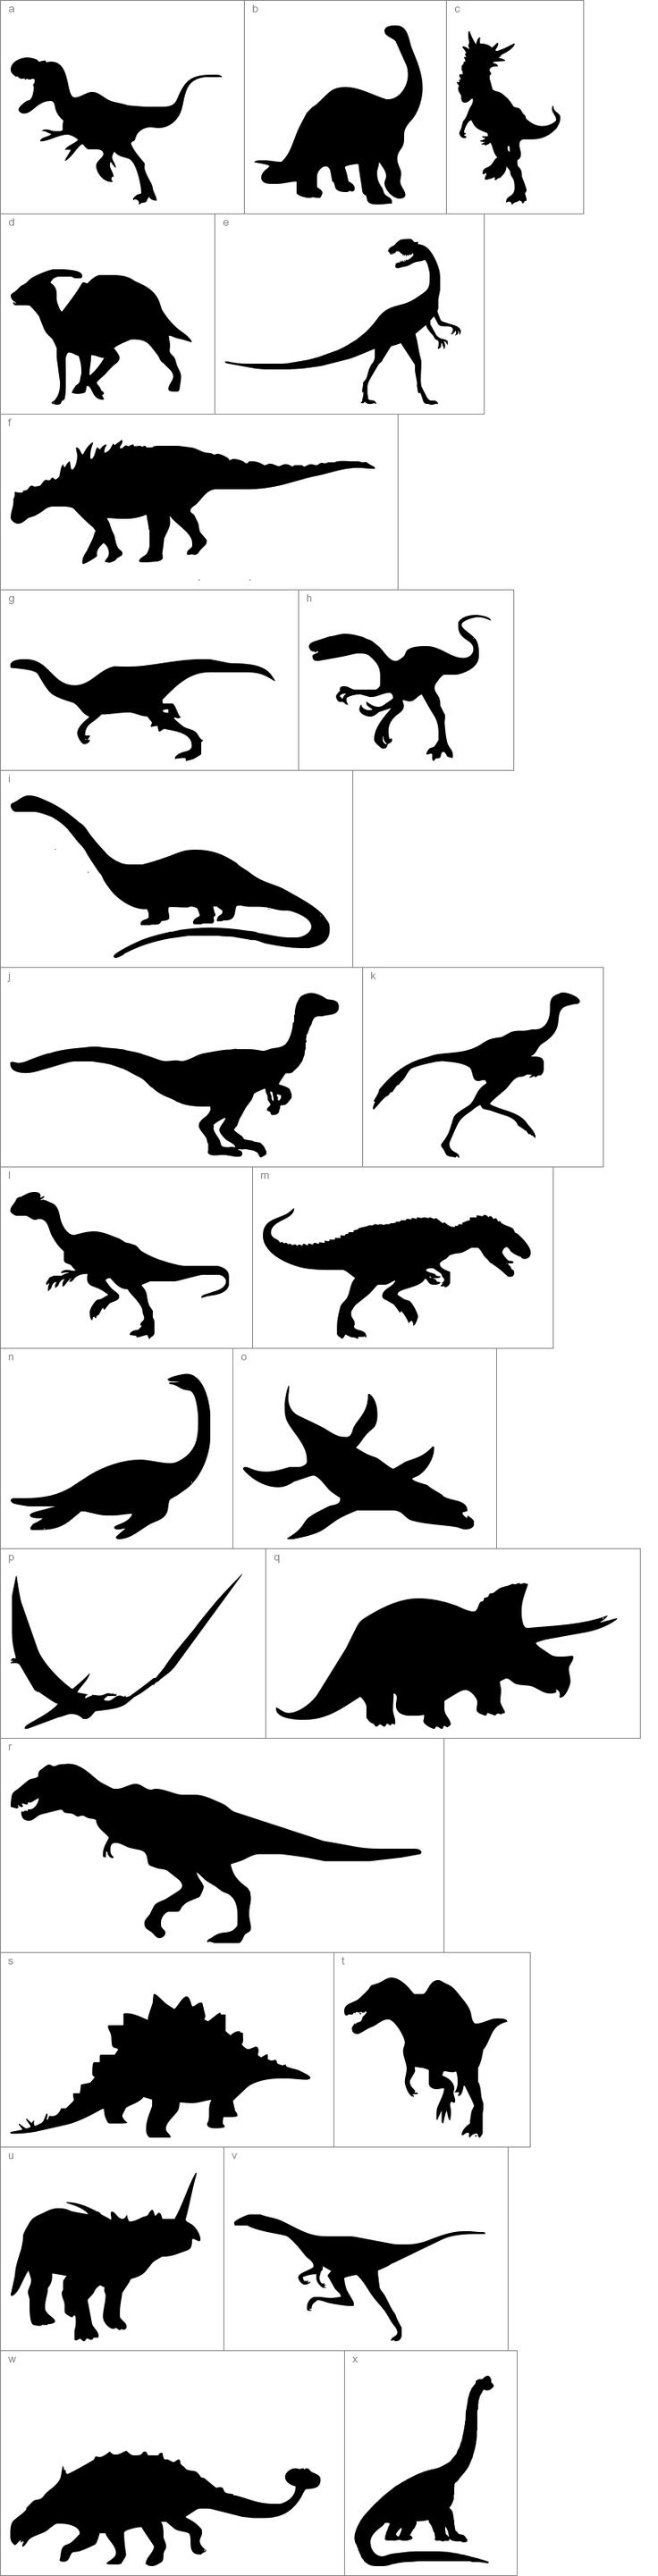 Dinosaur Dingbats Silhouettes Templates....Great for a Boysroom or Dino Party!: